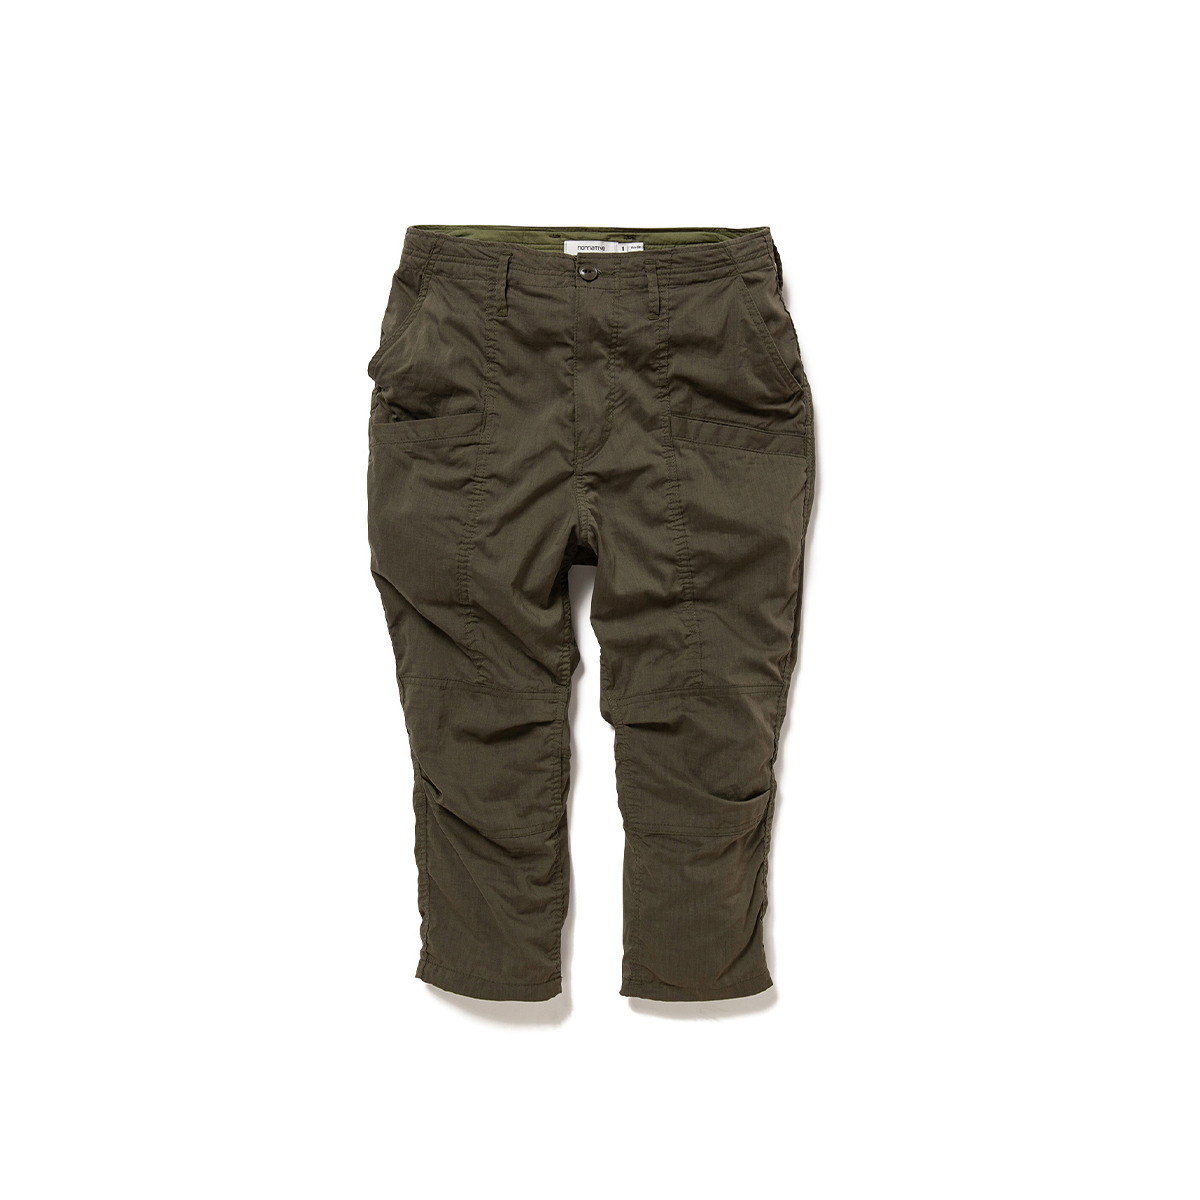 nonnative / EDUCATOR 6P TROUSERS SHIN CUT RELAXED FIT P/L WEATHER STRETCH COOLMAX® (Olive)